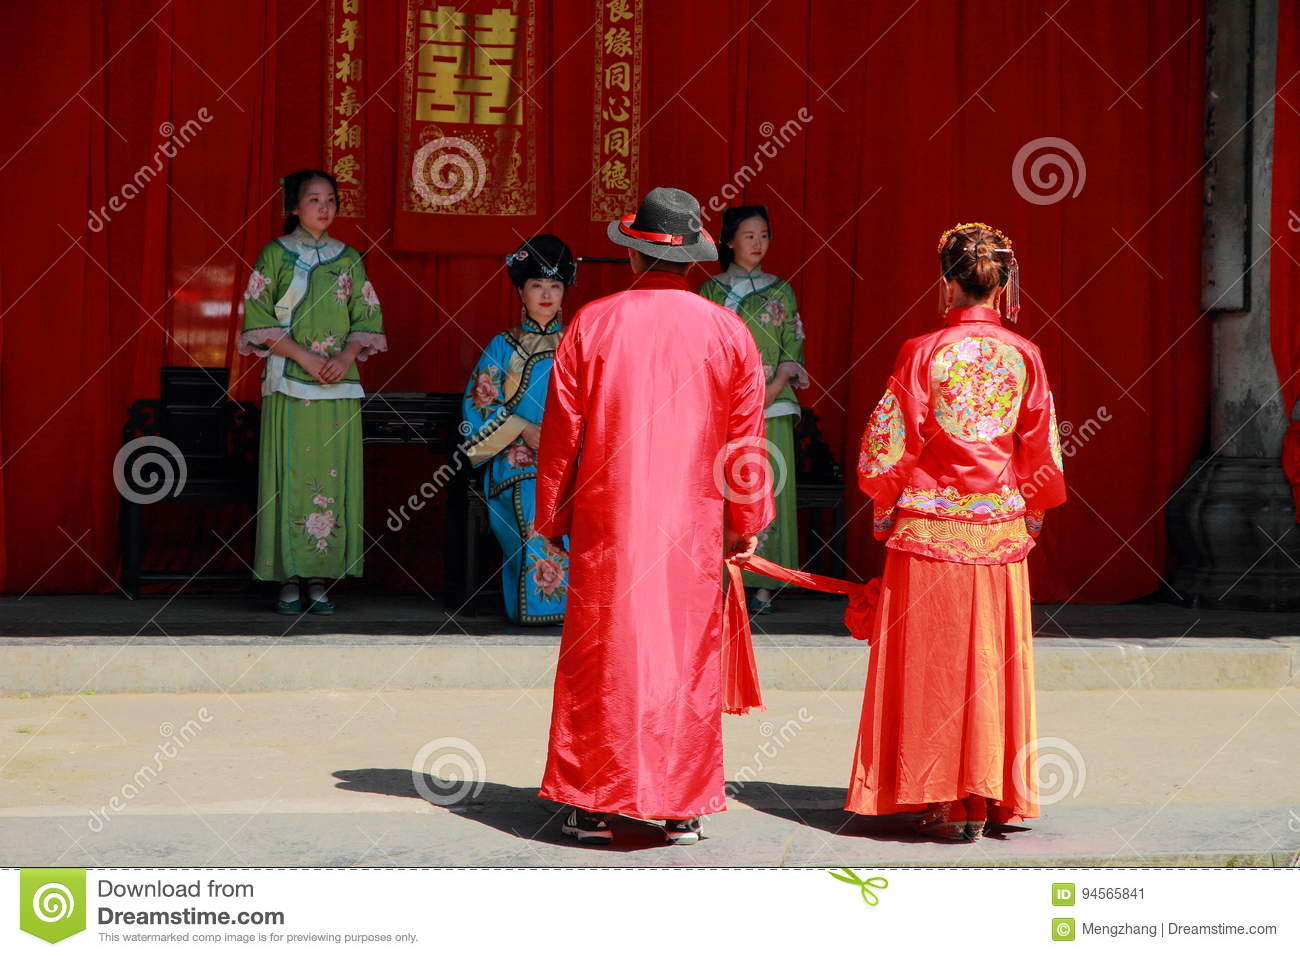 The ancient Chinese traditional wedding,bow to Heaven and Earth as part of a wedding ceremony